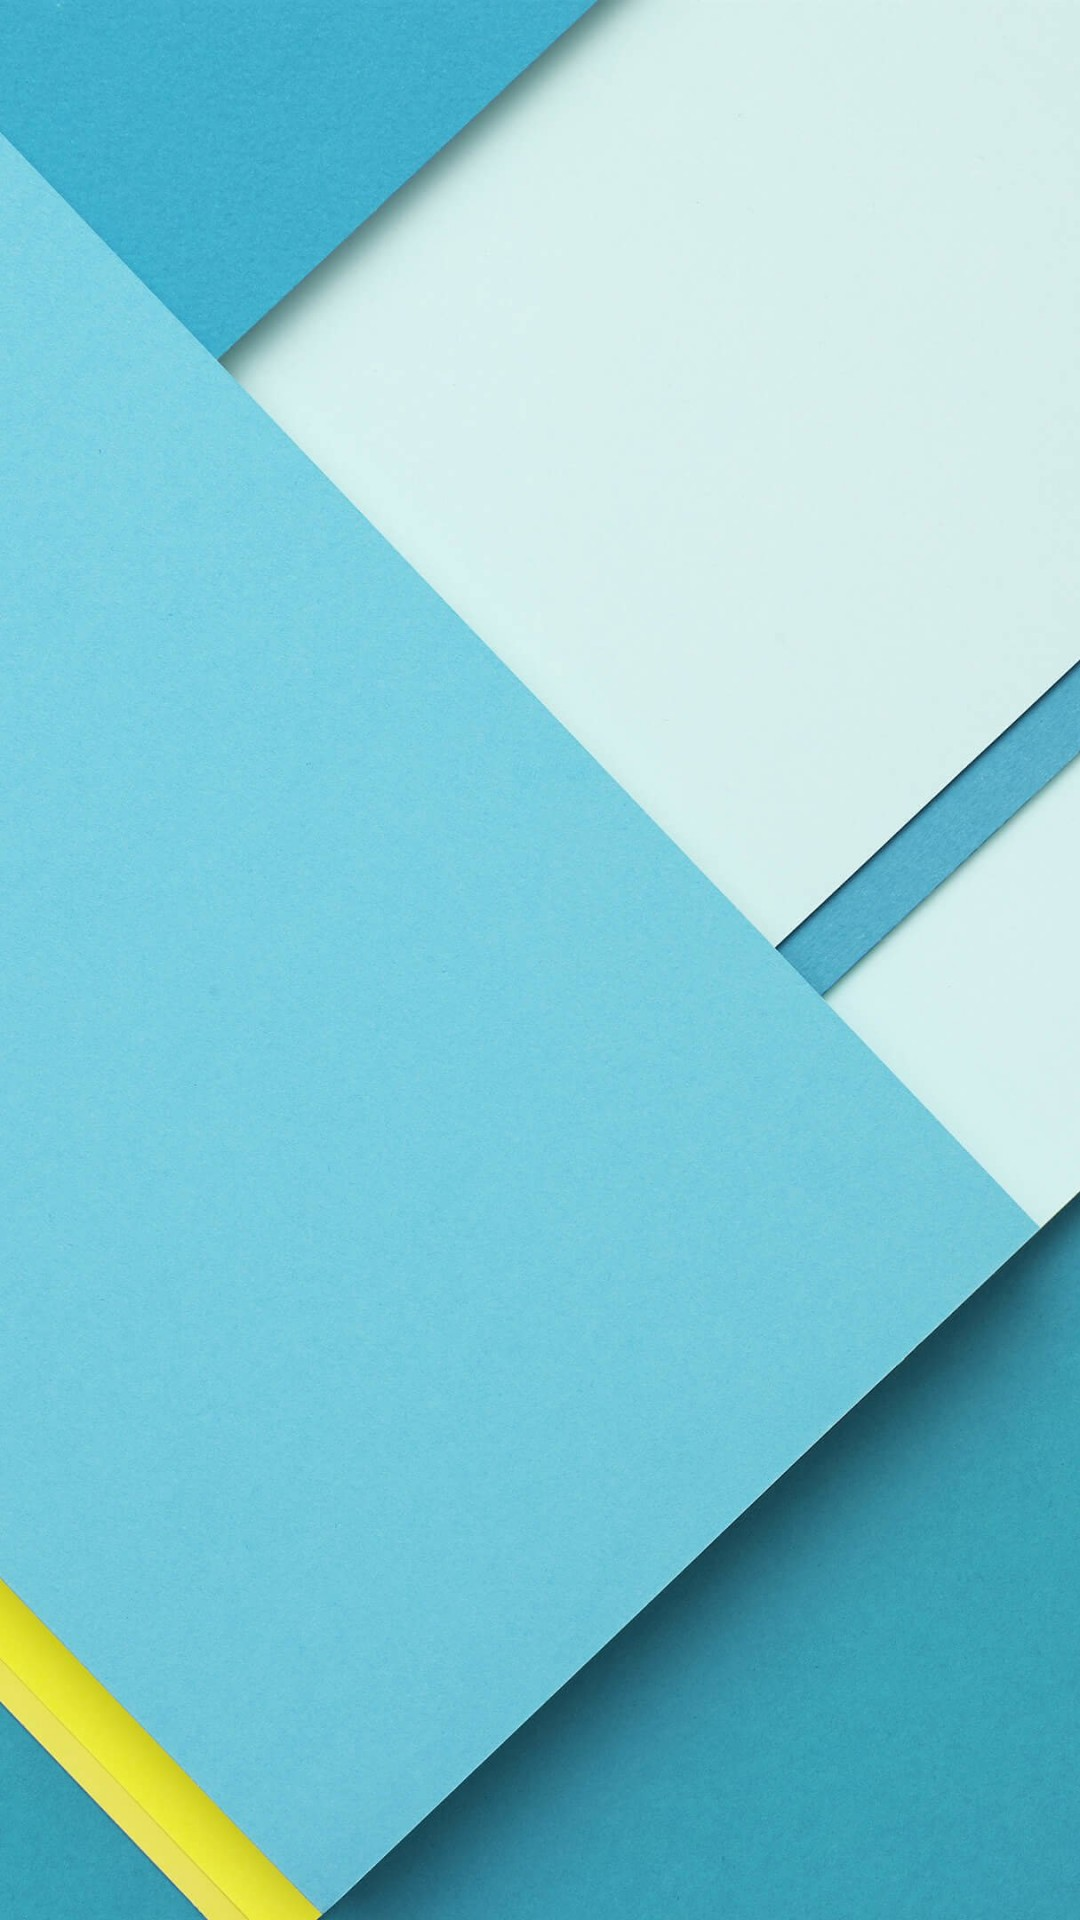 Google Material Design Wallpaper for SONY Xperia Z3